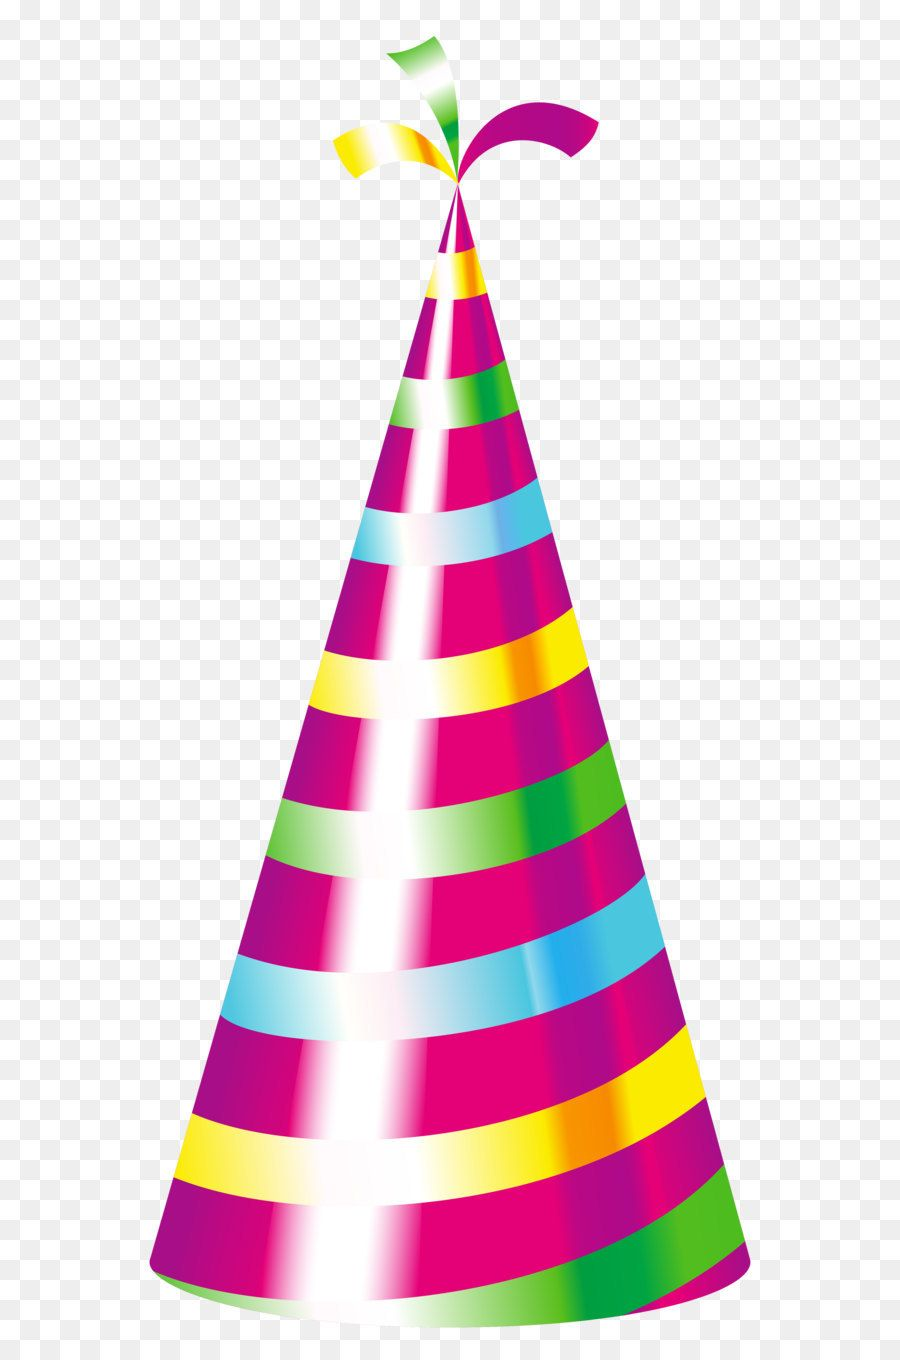 Birthday Party Hat Clip Art Party Hat Png Clipart Image Party Hats Birthday Party Hats Clip Art